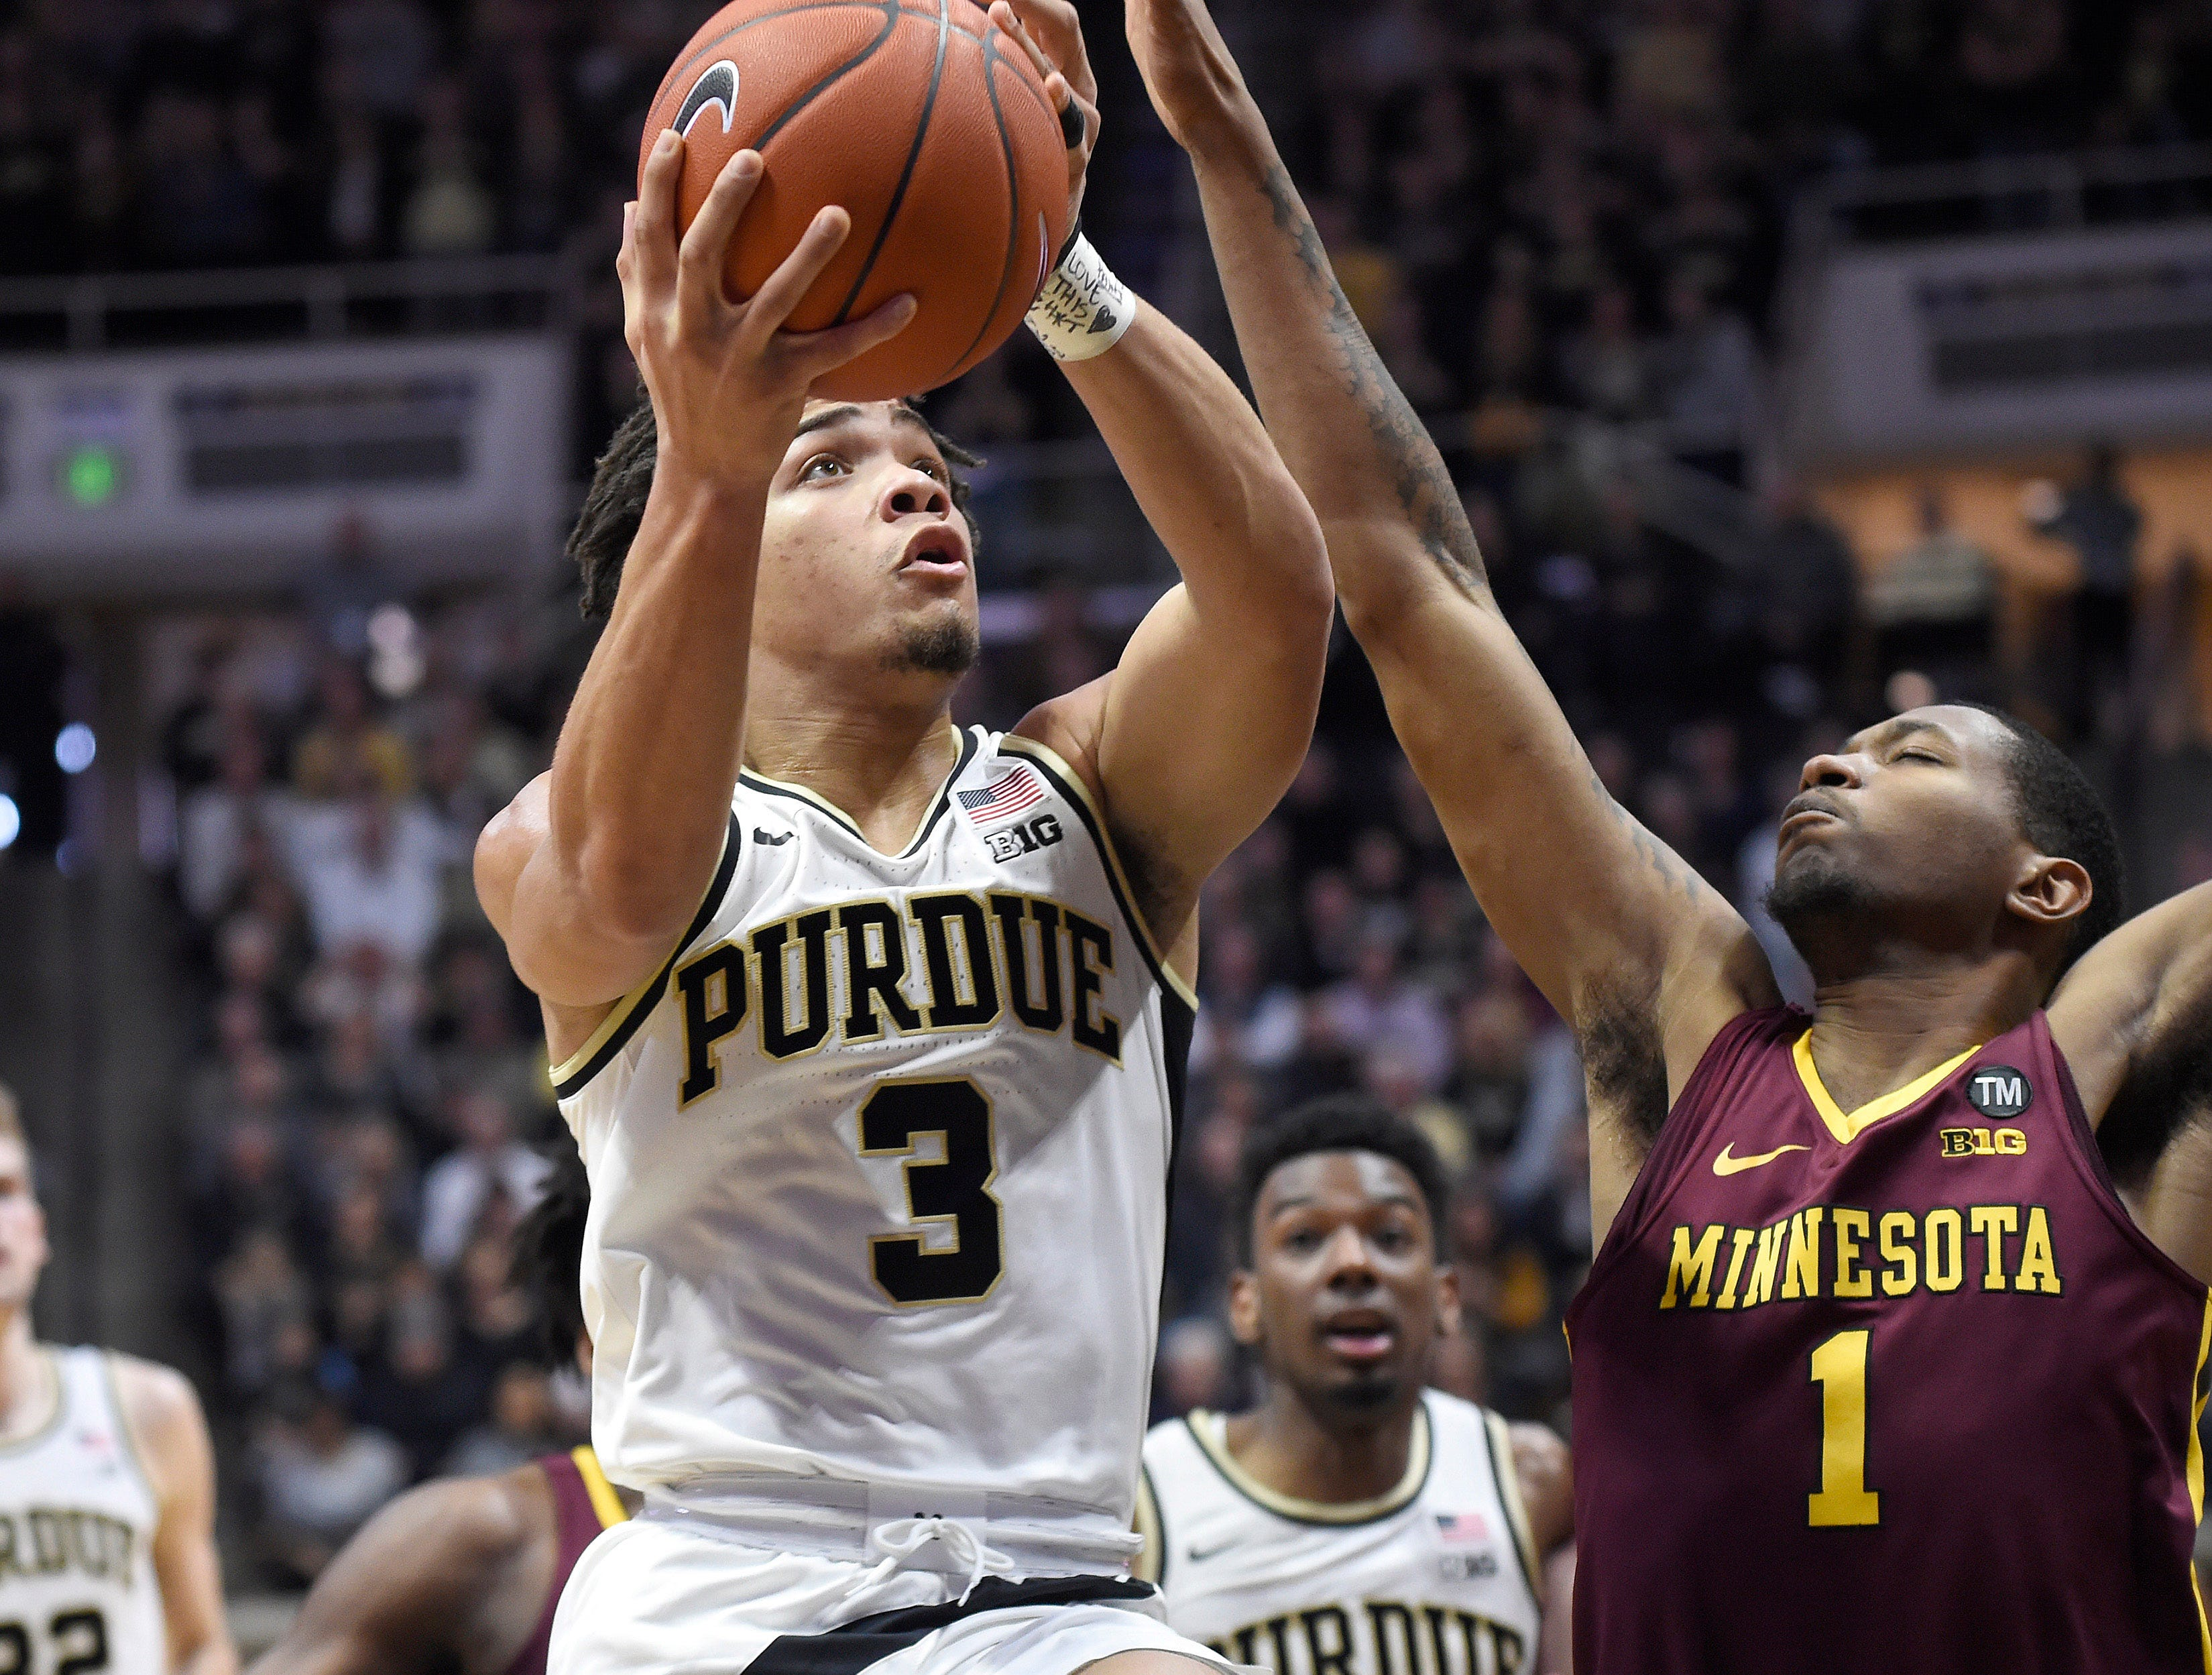 Feb 3, 2019; West Lafayette, IN, USA; Purdue Boilermakers guard Carsen Edwards (3) shoots the ball as Minnesota Golden Gophers guard Dupree McBrayer (1) defends in the first half at Mackey Arena. Mandatory Credit: Sandra Dukes-USA TODAY Sports